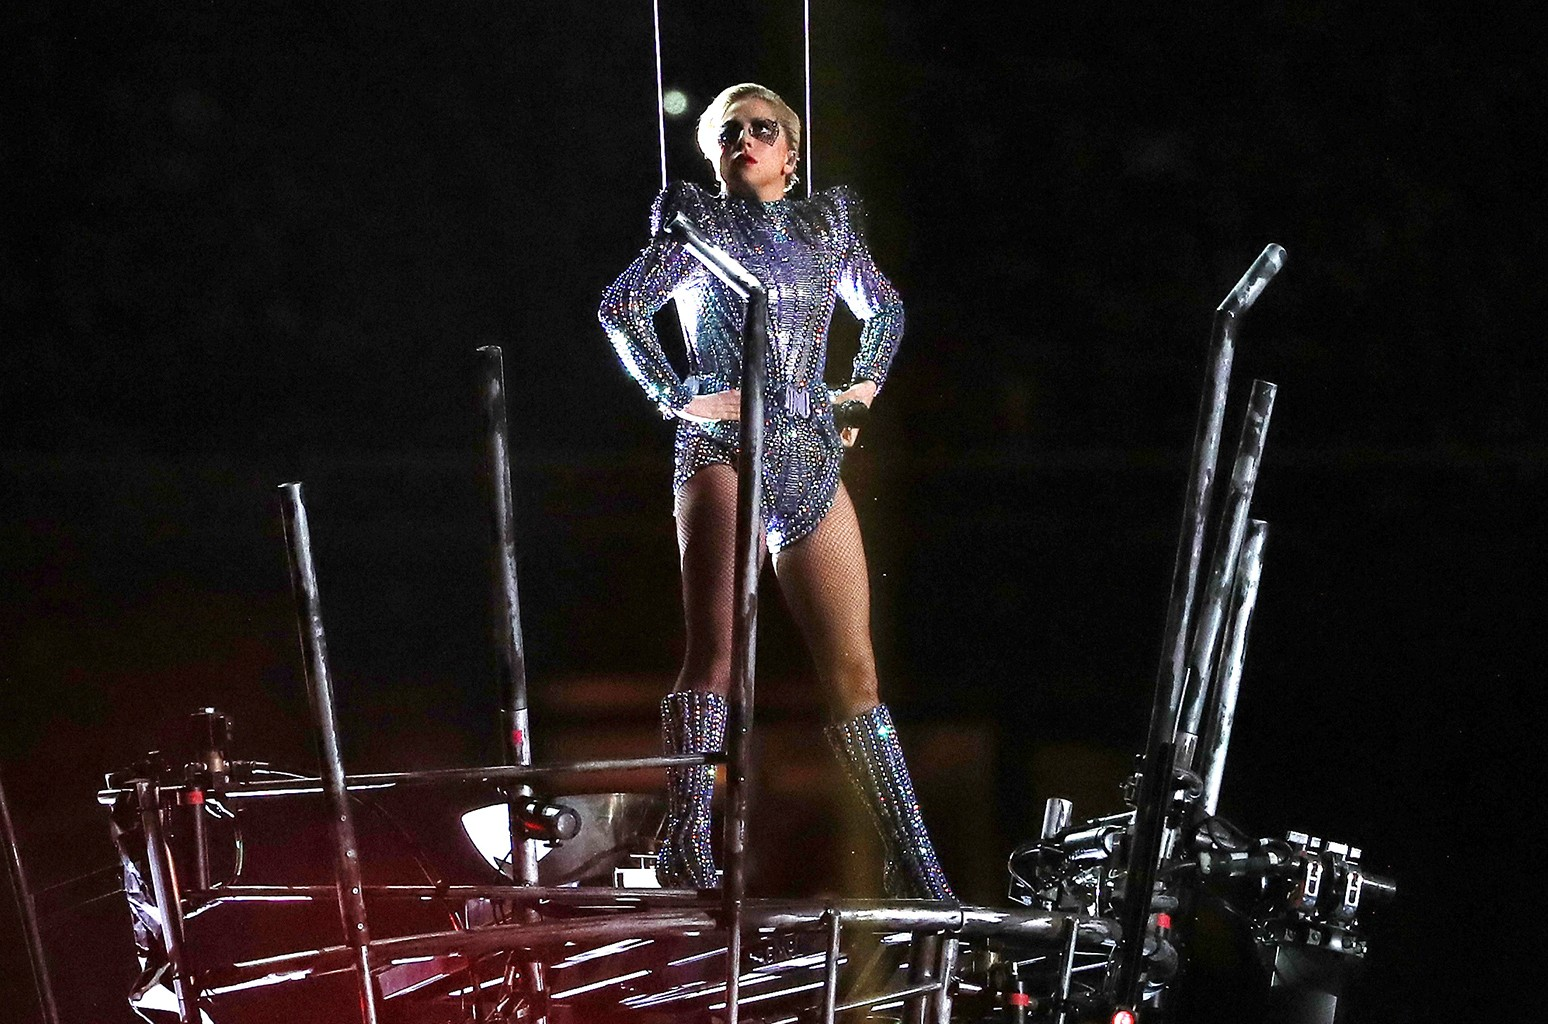 Lady Gaga performs during the Pepsi Zero Sugar Super Bowl 51 Halftime Show at NRG Stadium on Feb. 5, 2017 in Houston.